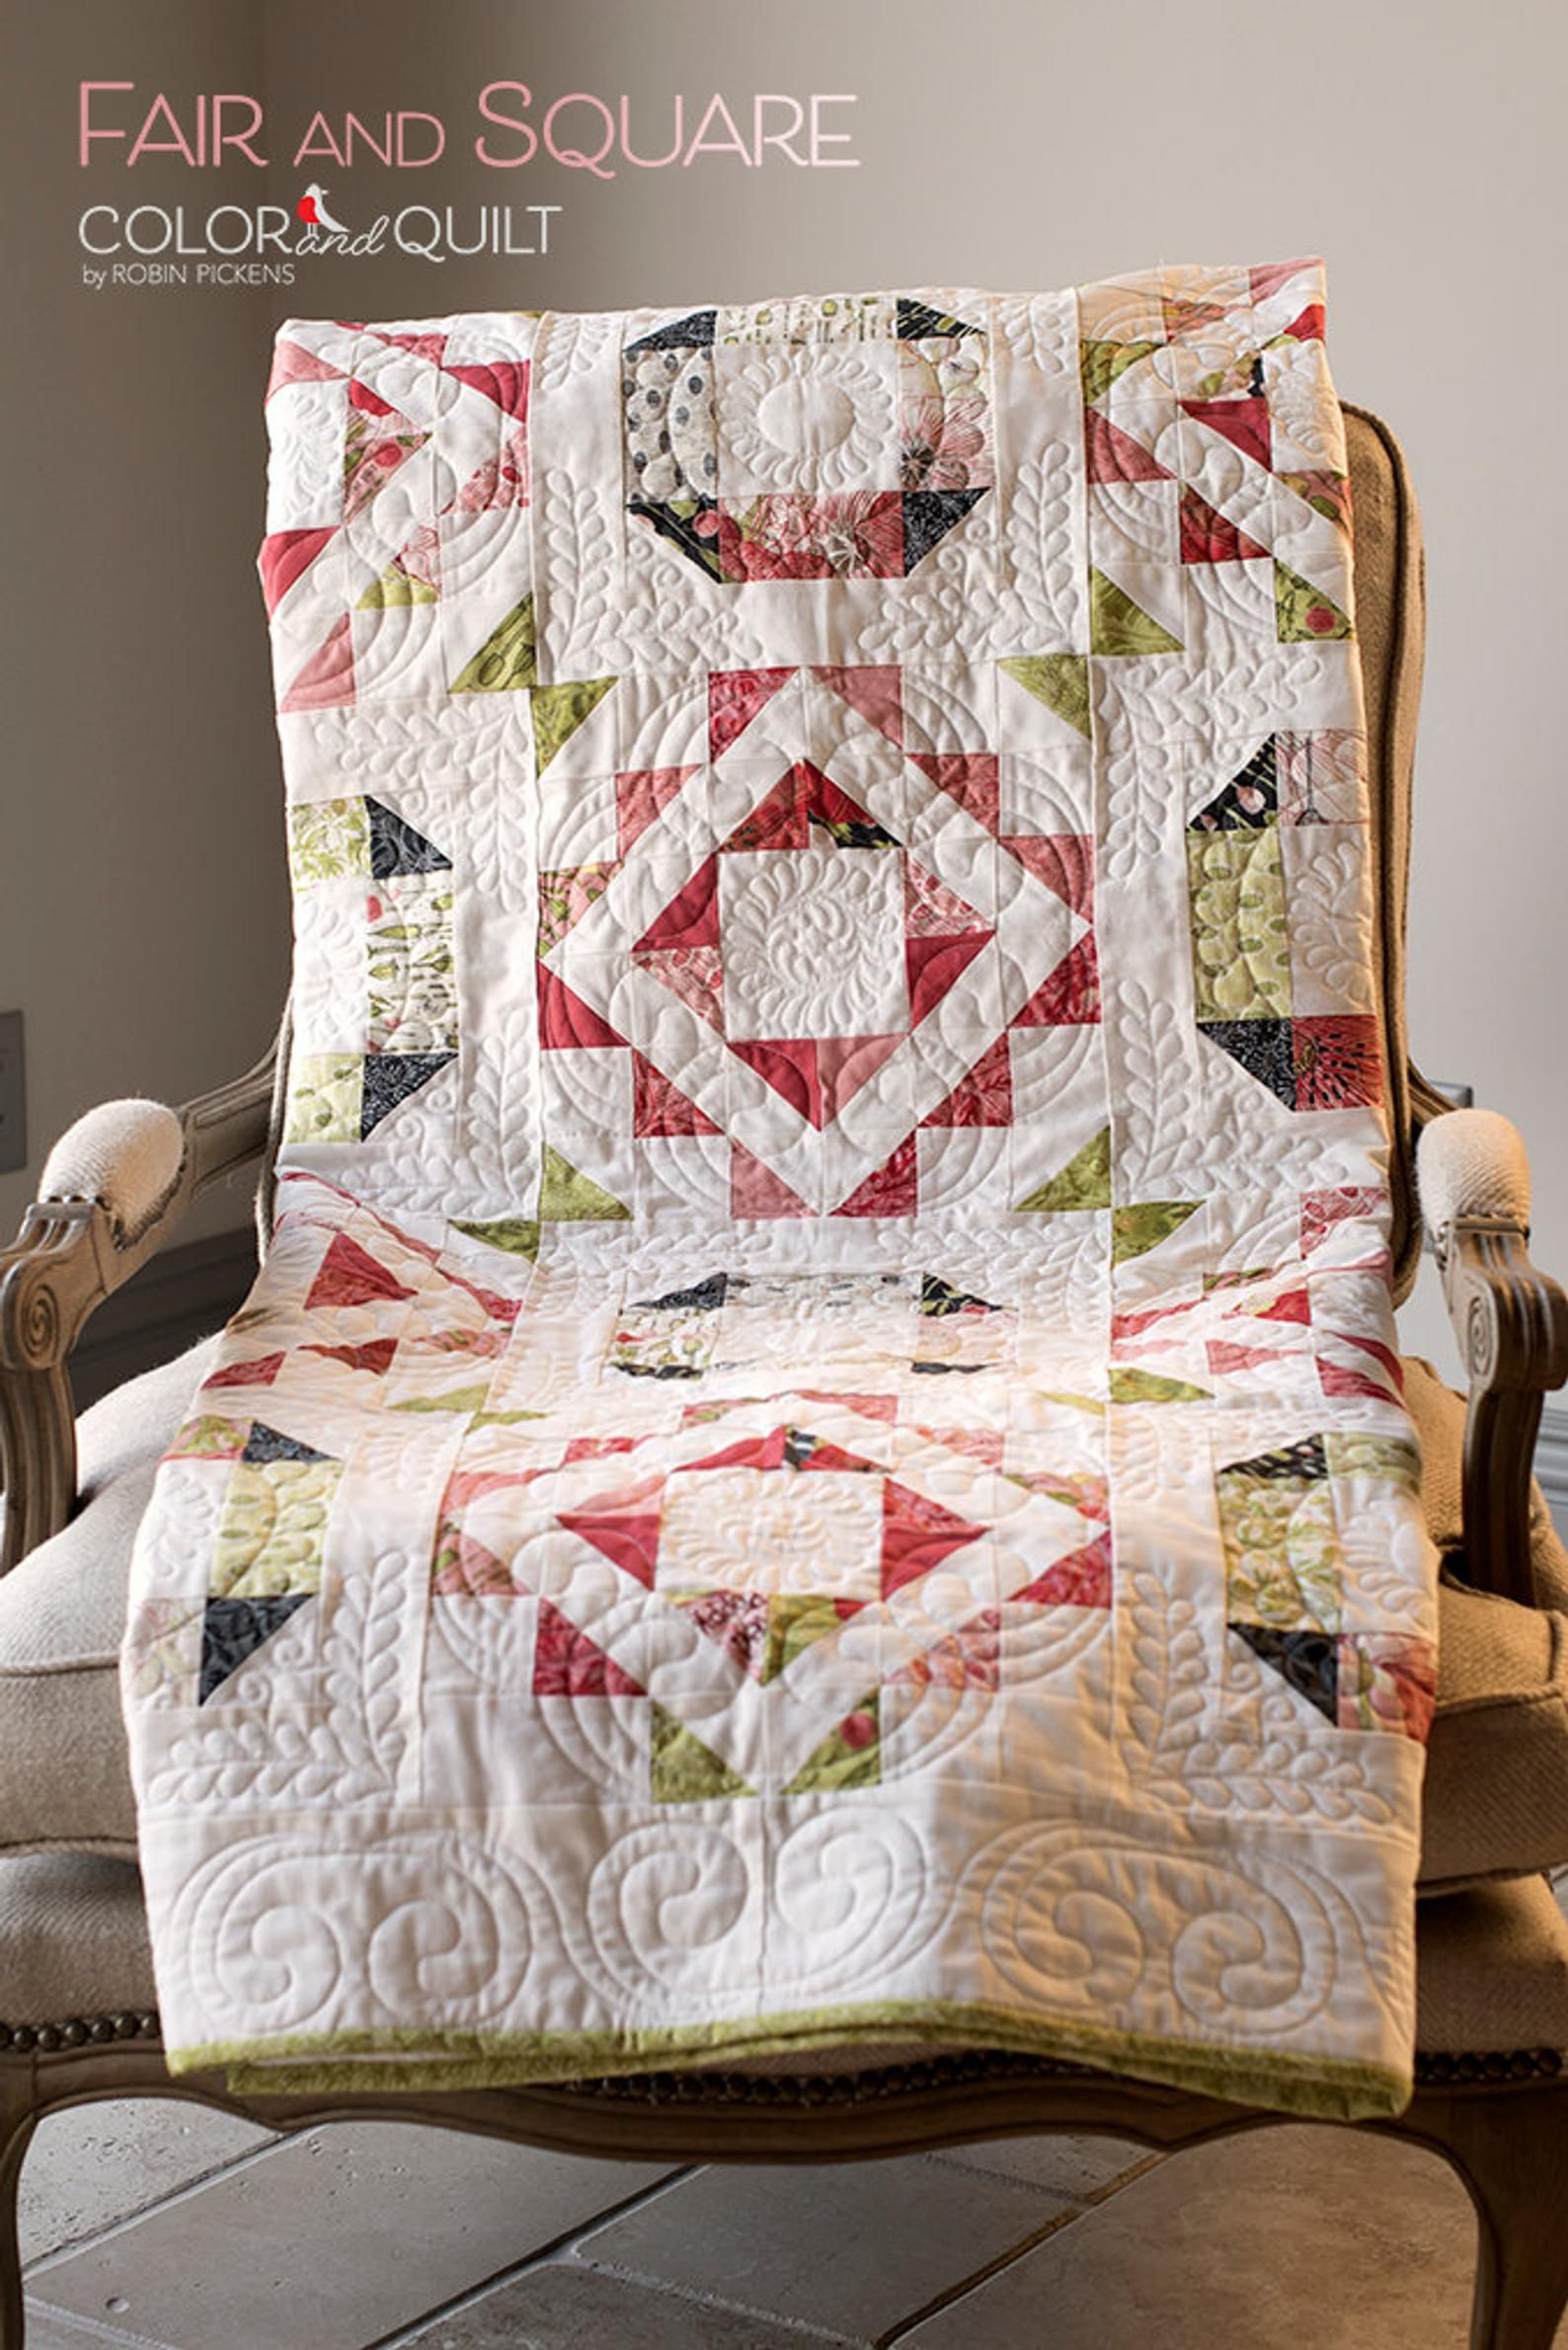 Fair and square digital pdf quilt pattern by robin pickens